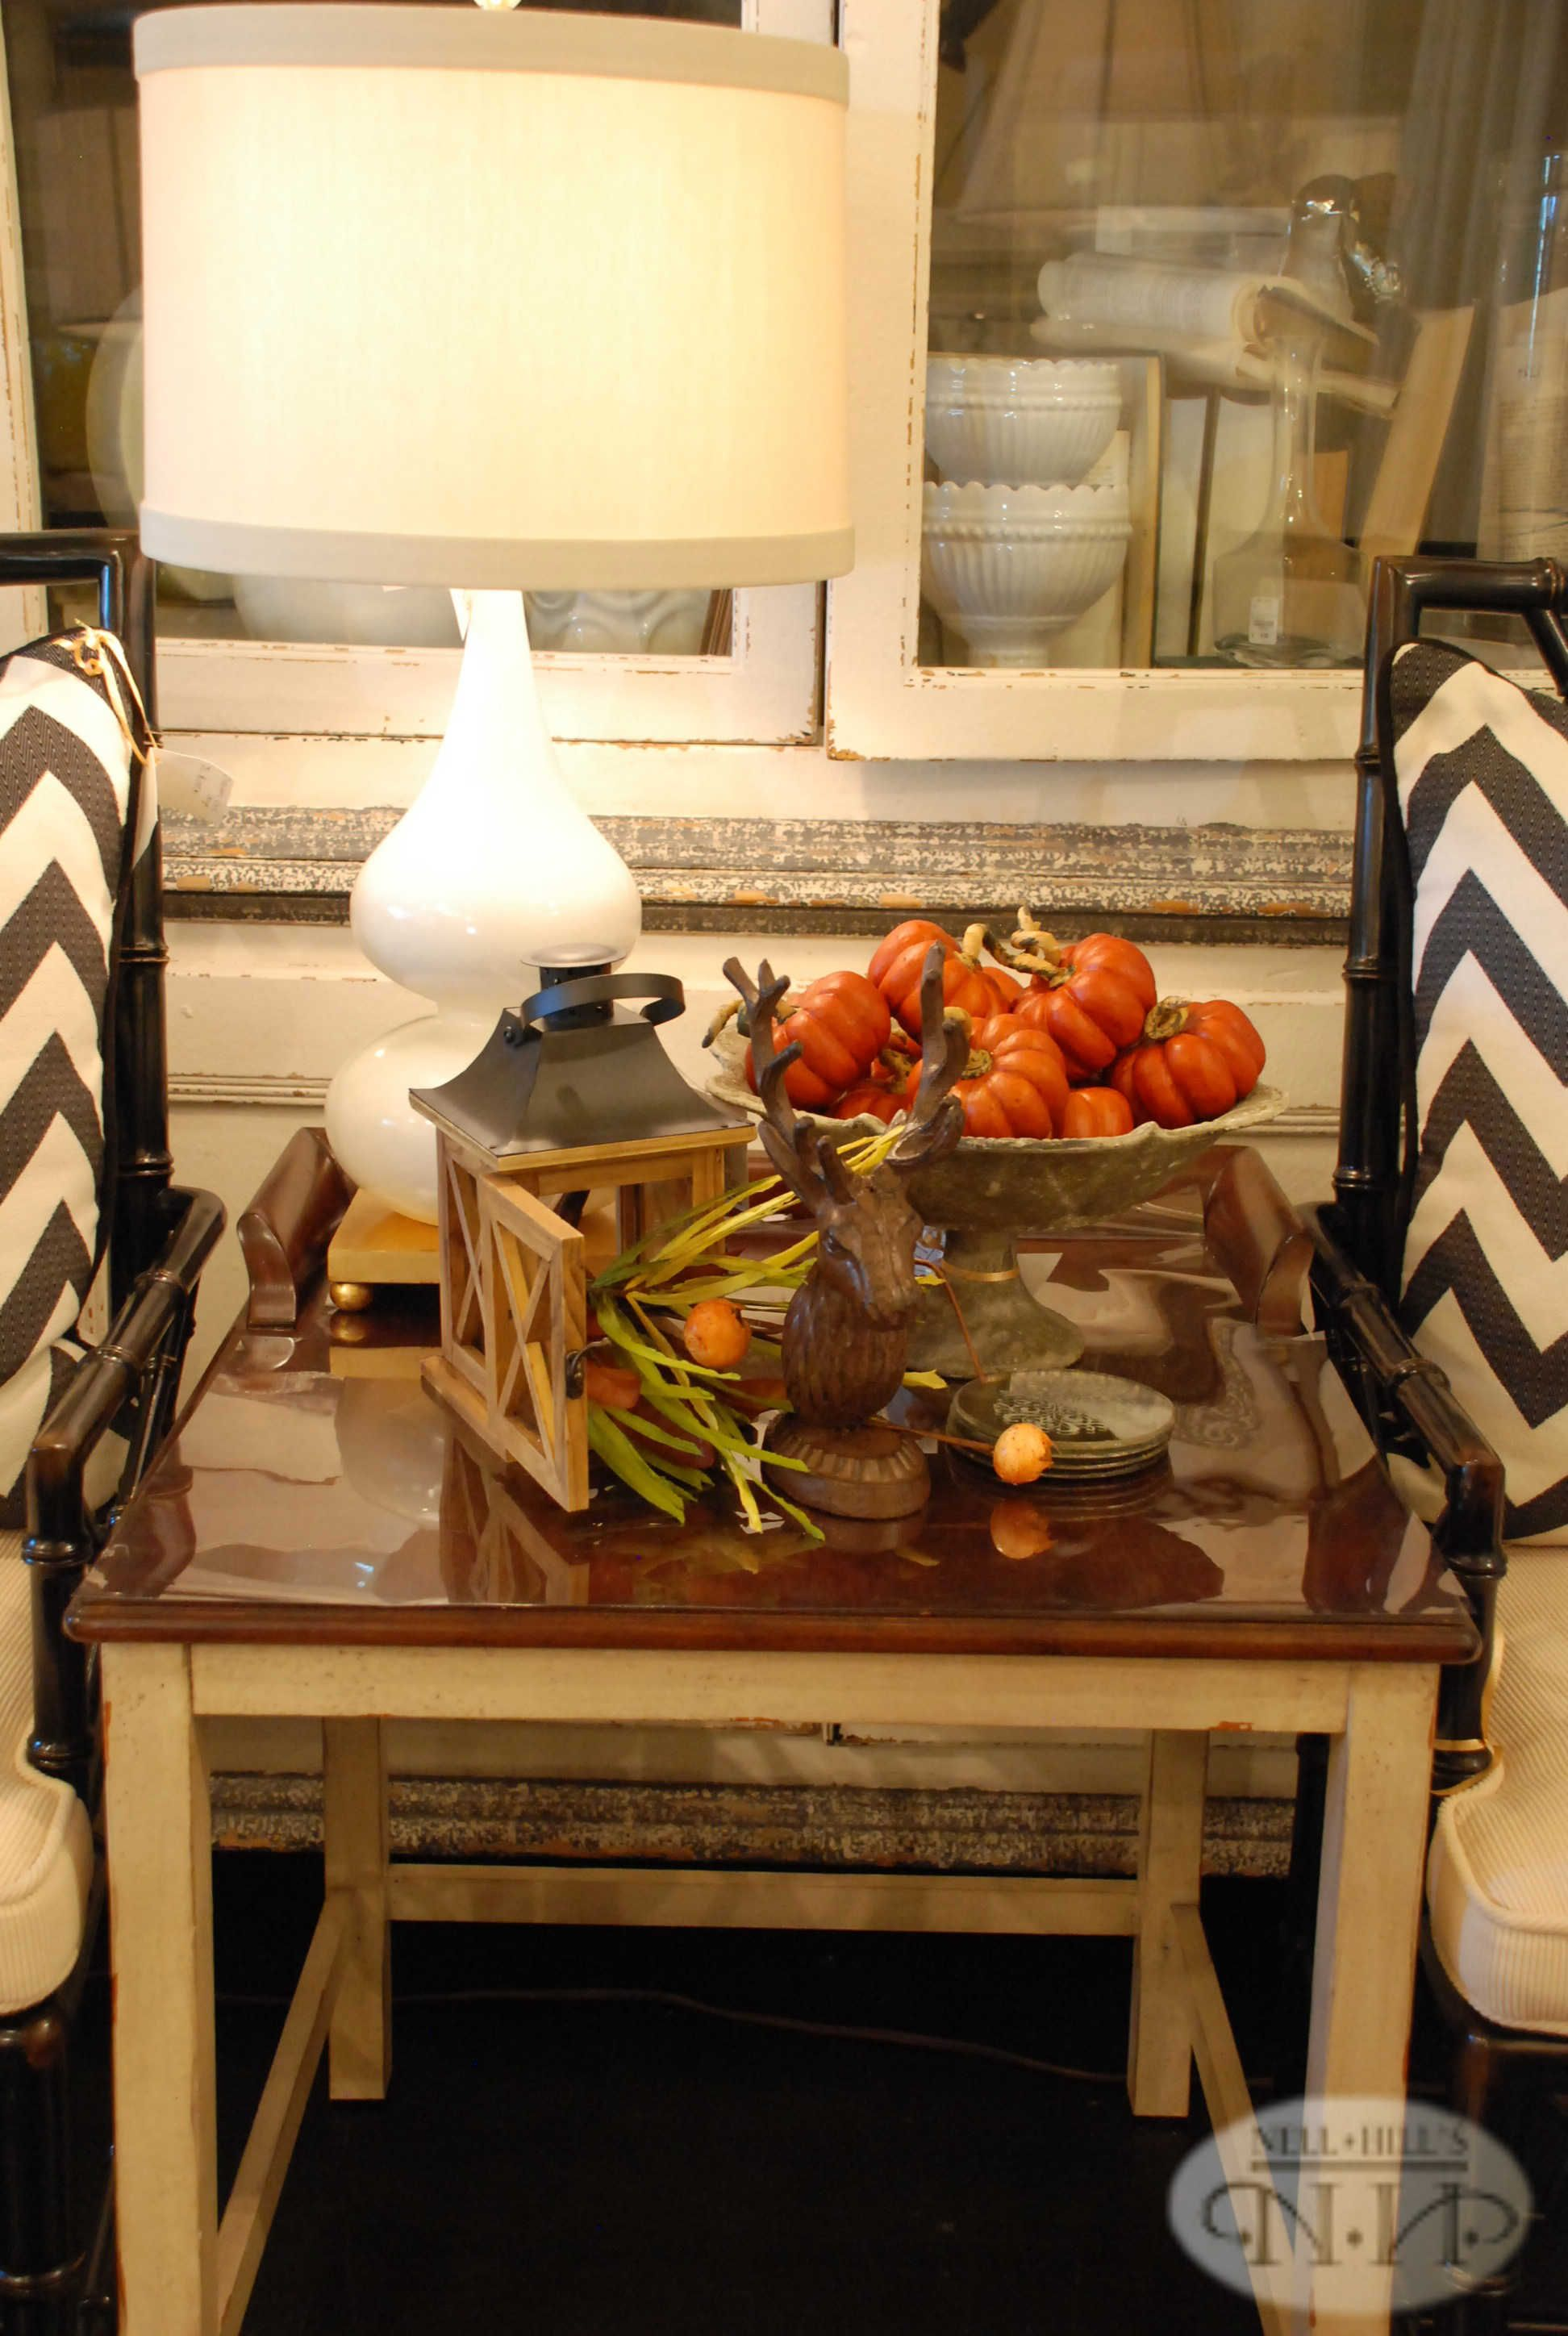 Here's a great way to decorate your end table #nellhills #falldecor #pumpkins